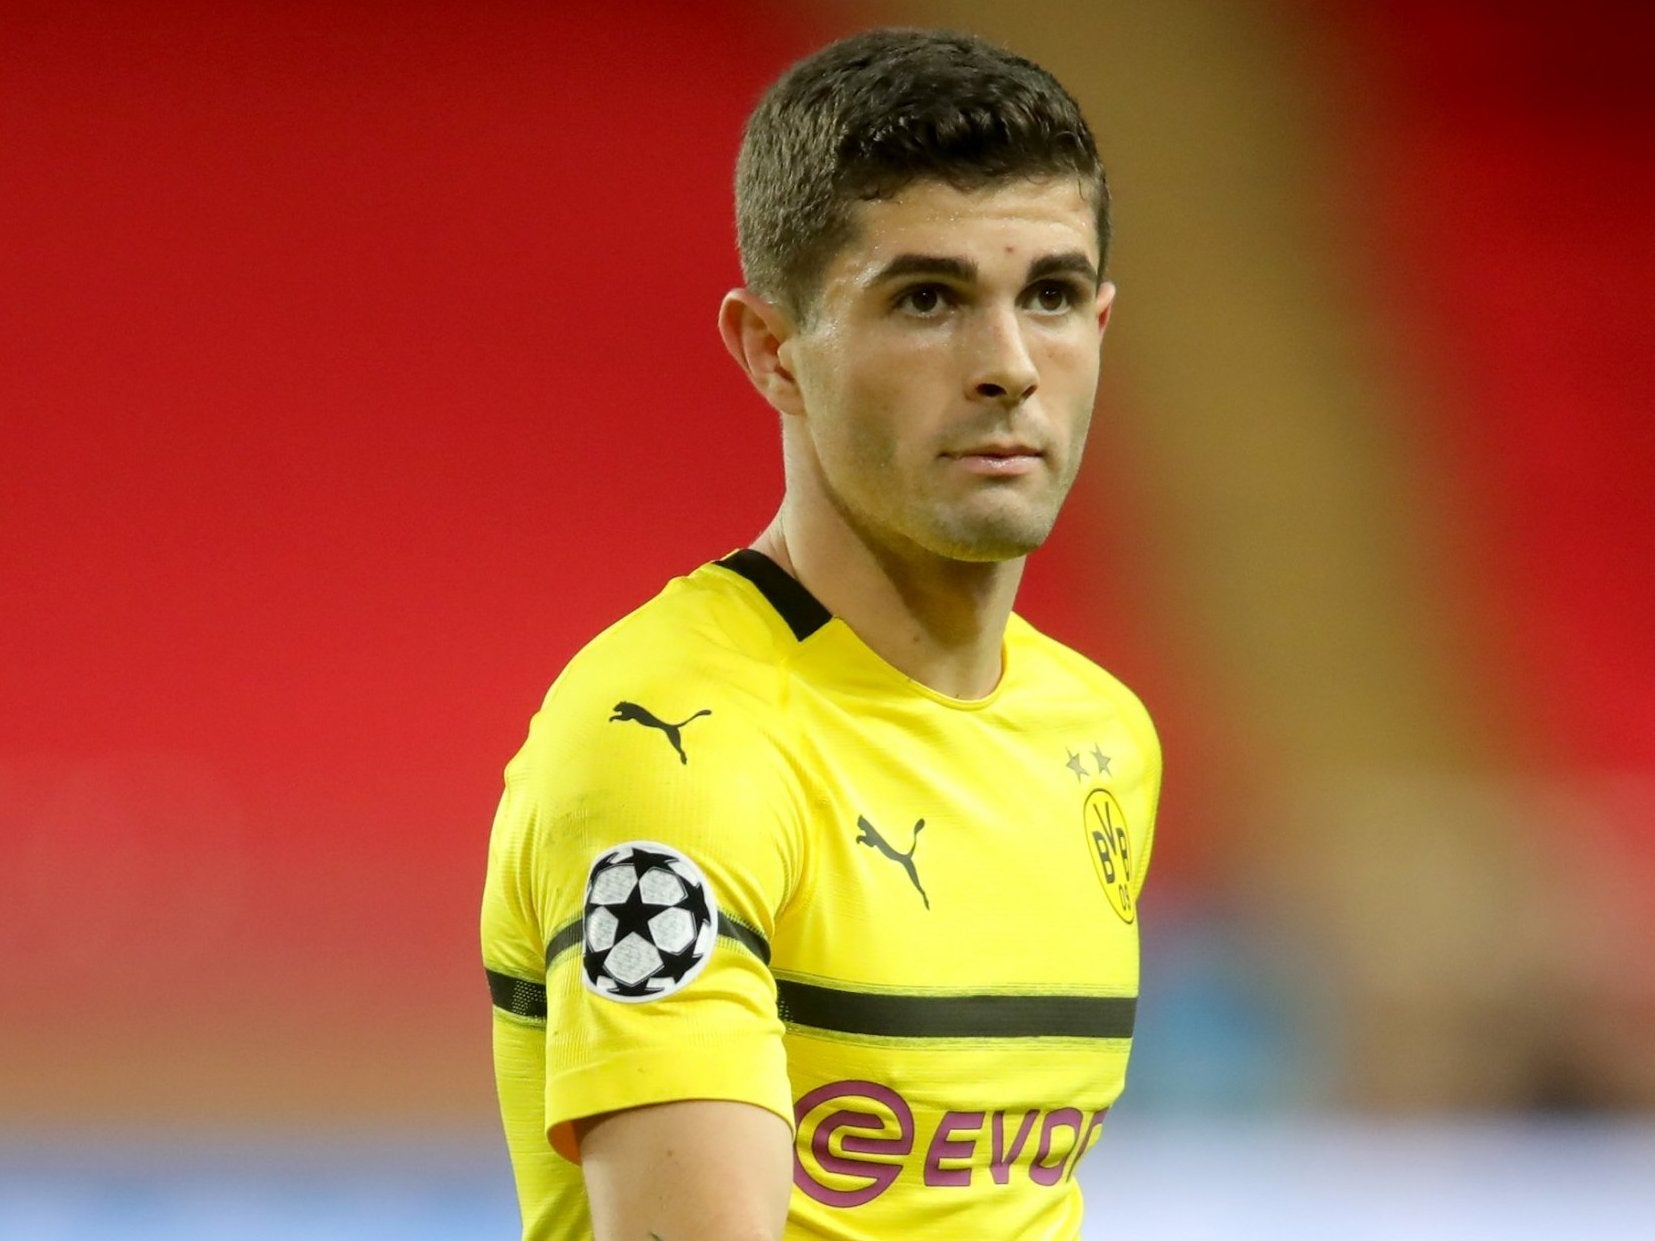 bf5509f0285 Christian Pulisic Chelsea transfer: Blues seal £58m deal but US star will  remain on loan at Borussia Dortmund | The Independent